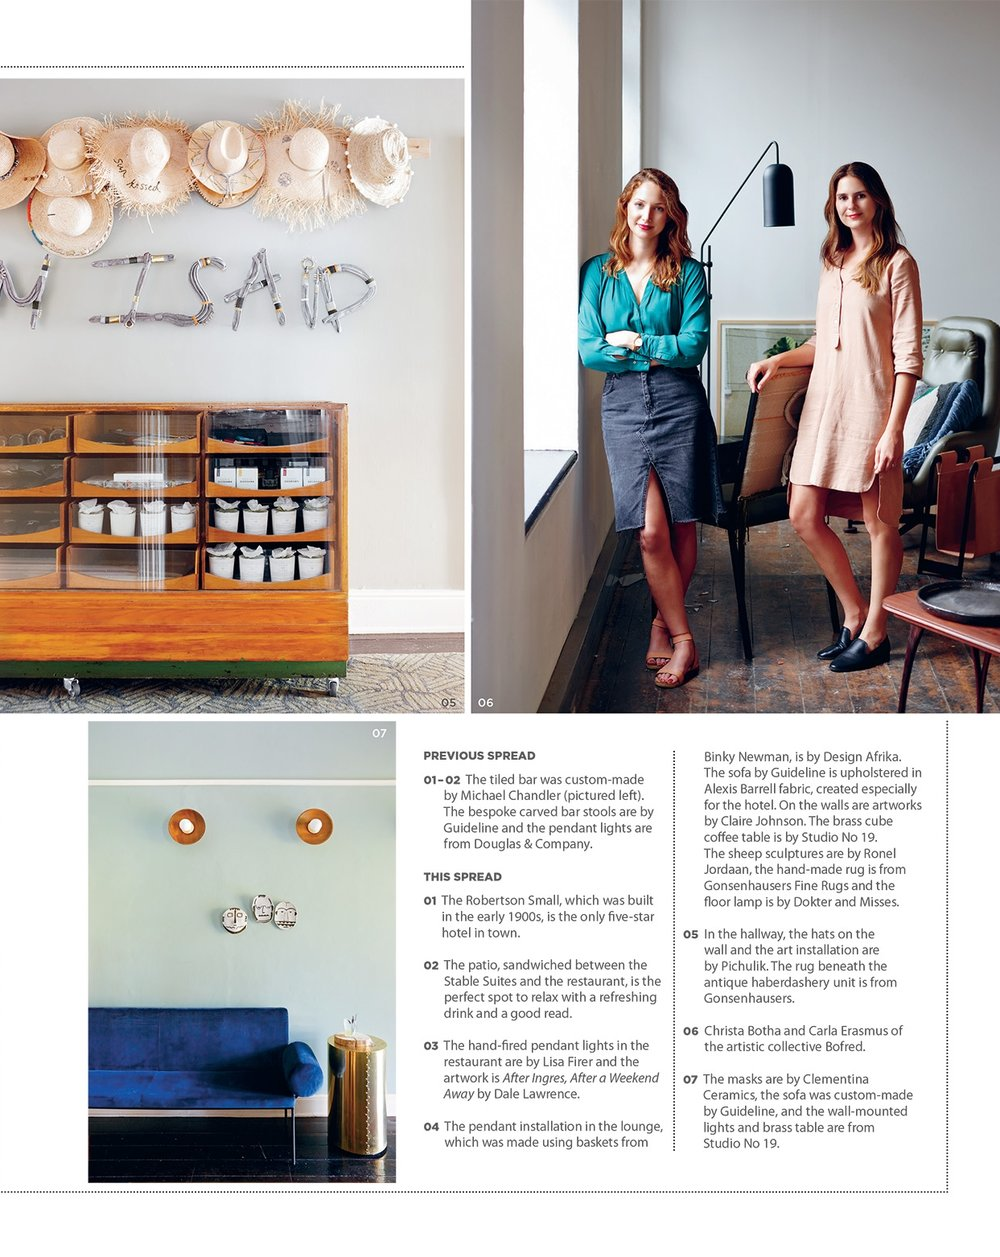 VISI Magazine. 2017. Bofred for Robertson Small Hotel.